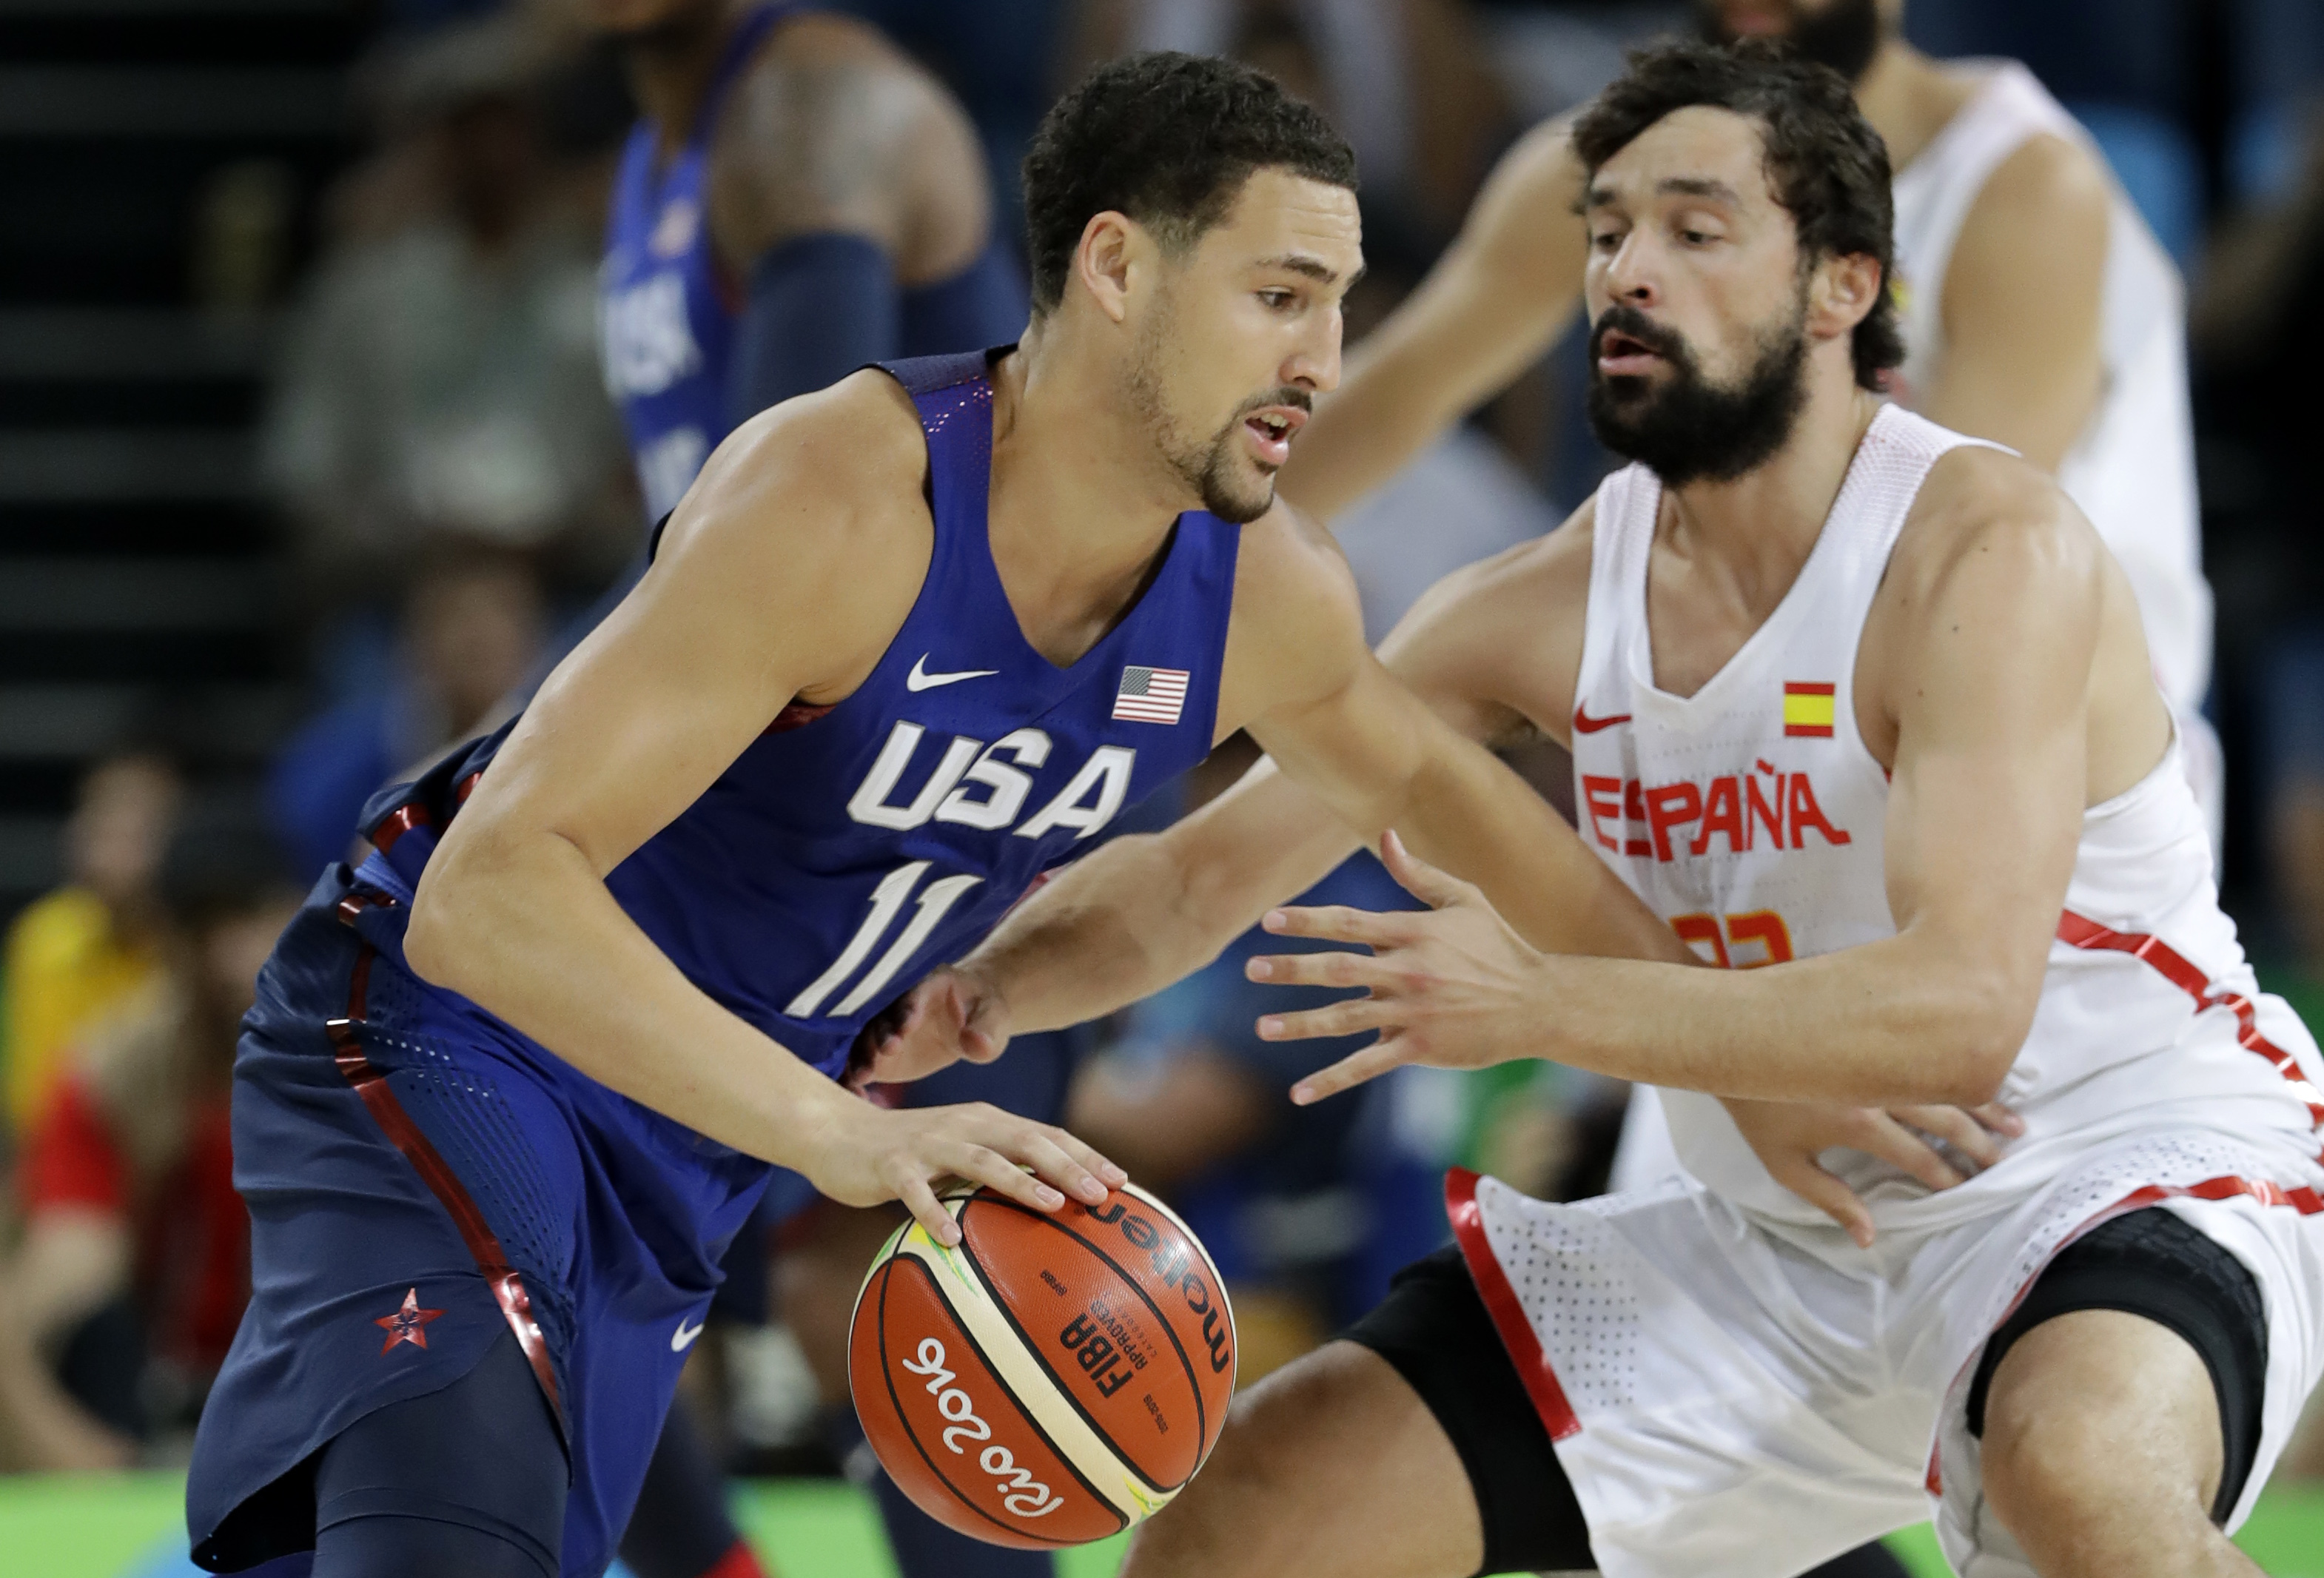 United States' Klay Thompson (11) drives past Spain's Sergio Llull, right, during a semifinal round basketball game at the 2016 Summer Olympics in Rio de Janeiro, Brazil, Friday, Aug. 19, 2016. (AP Photo/Charlie Neibergall)